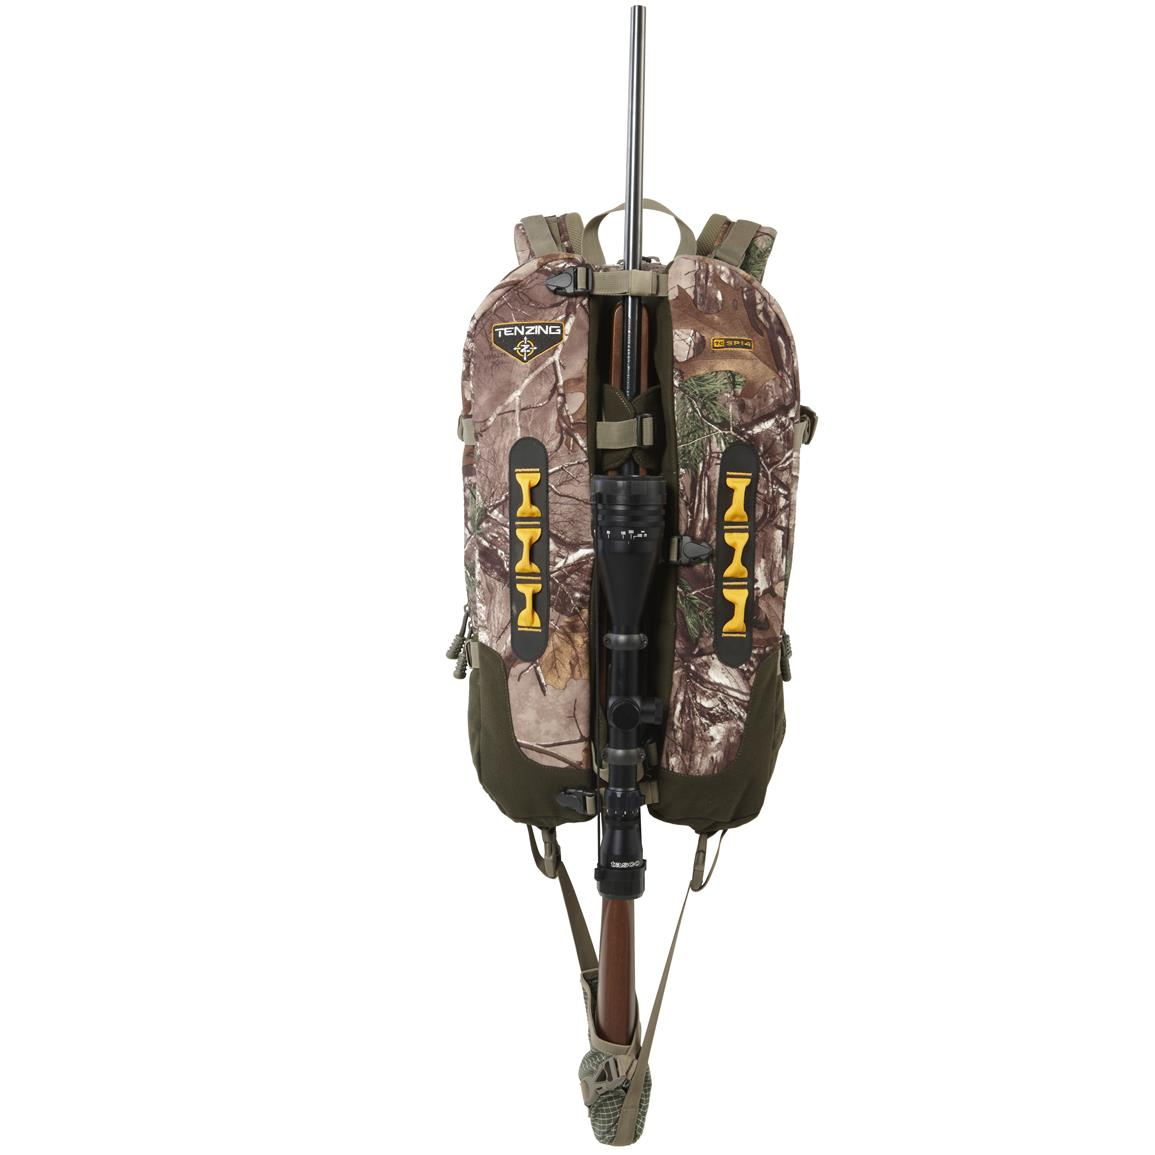 Split through center of pack to carry crossbow or rifle